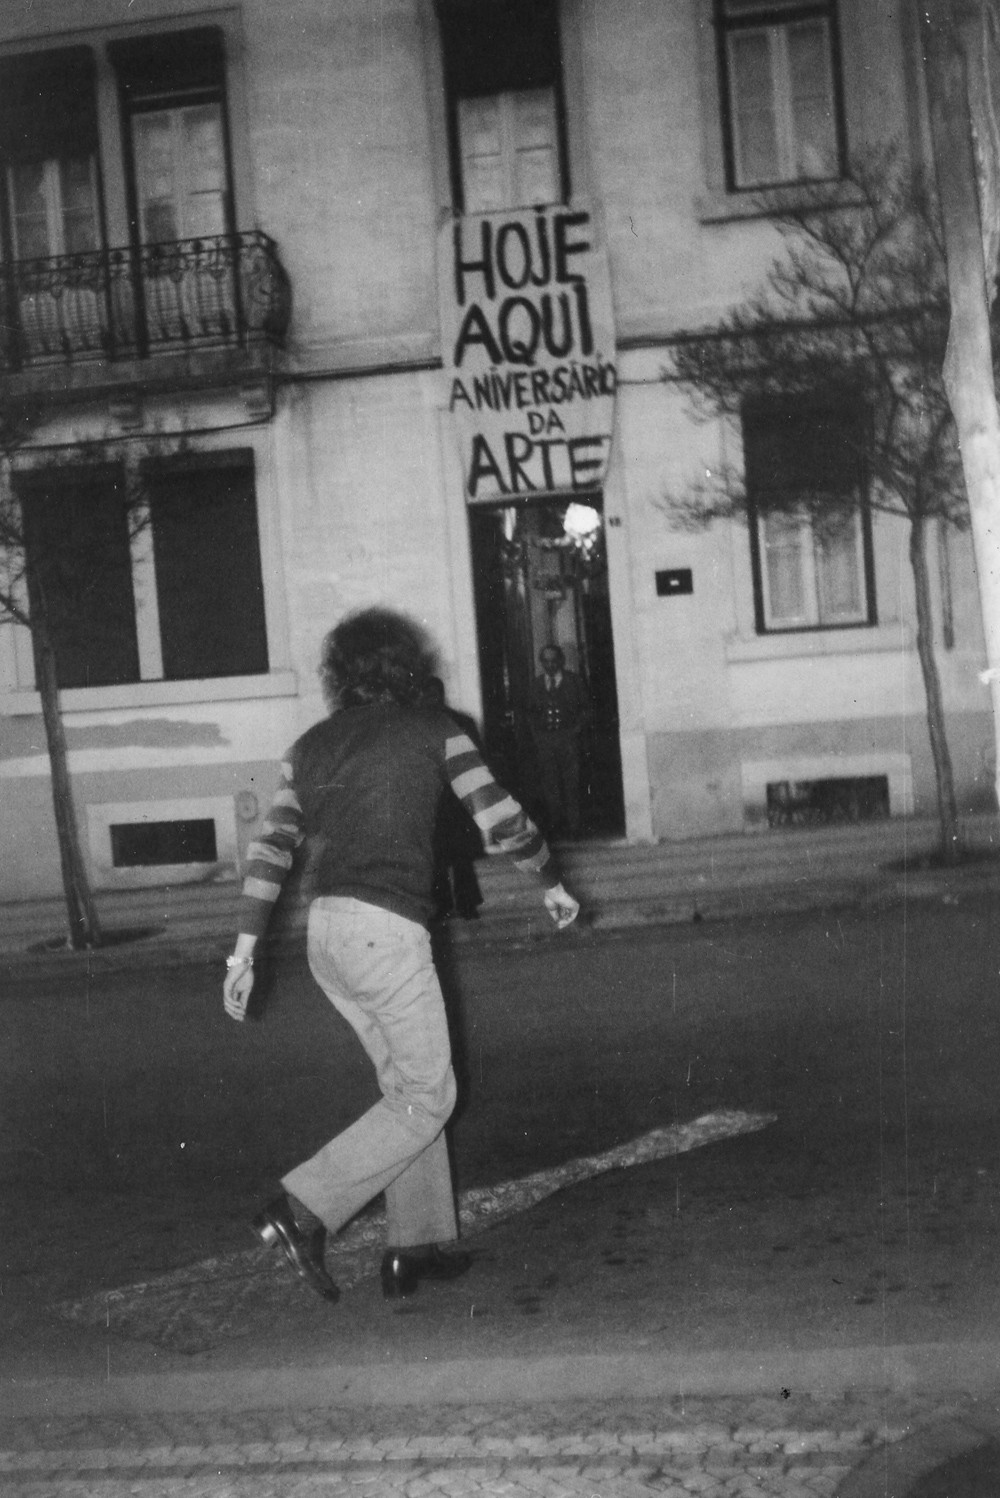 Anniversary of Art, CAPC, 1974. Performance by Albuquerque Mendes.